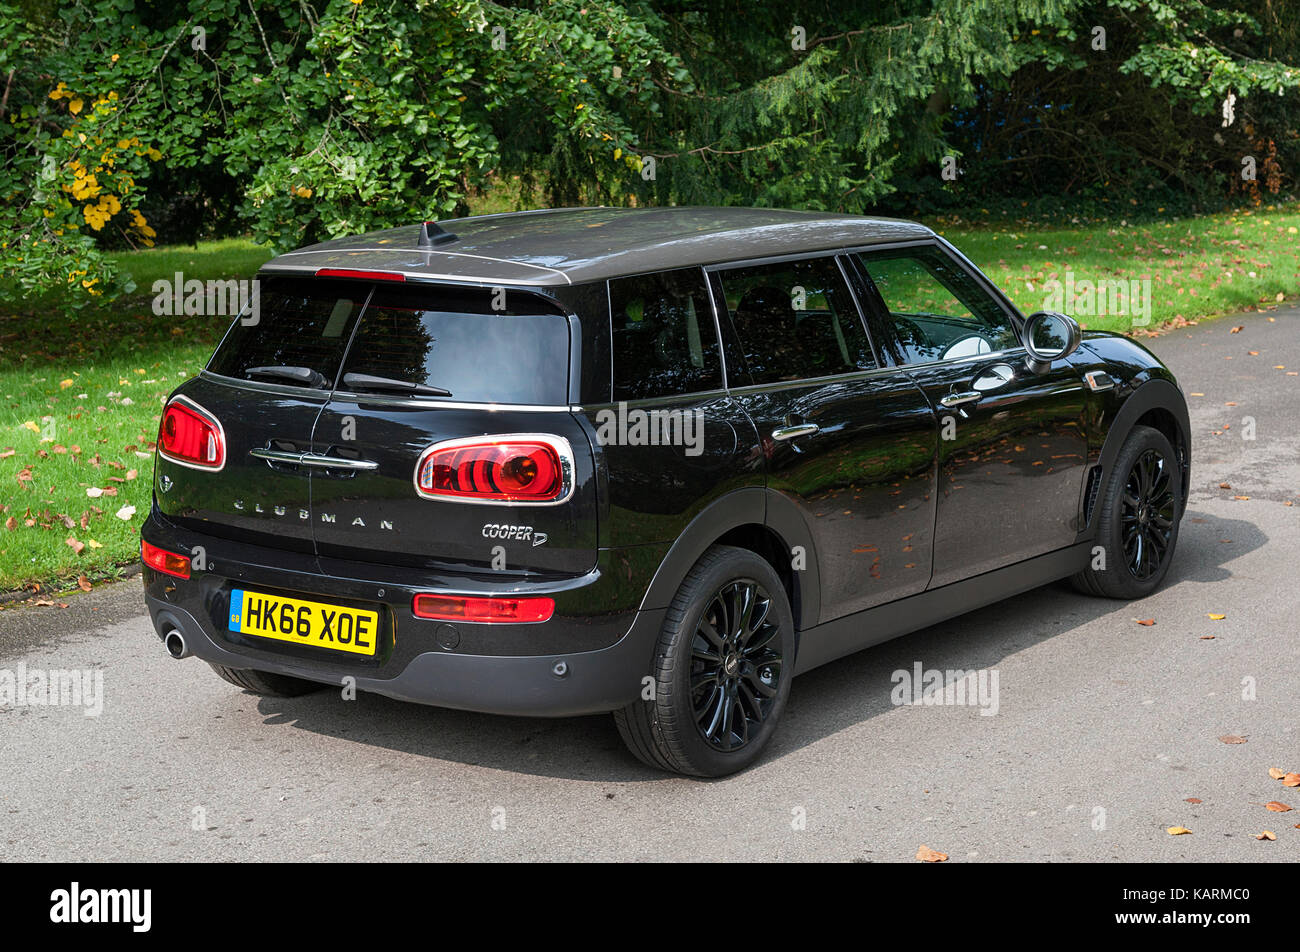 mini cooper d stock photos mini cooper d stock images alamy. Black Bedroom Furniture Sets. Home Design Ideas